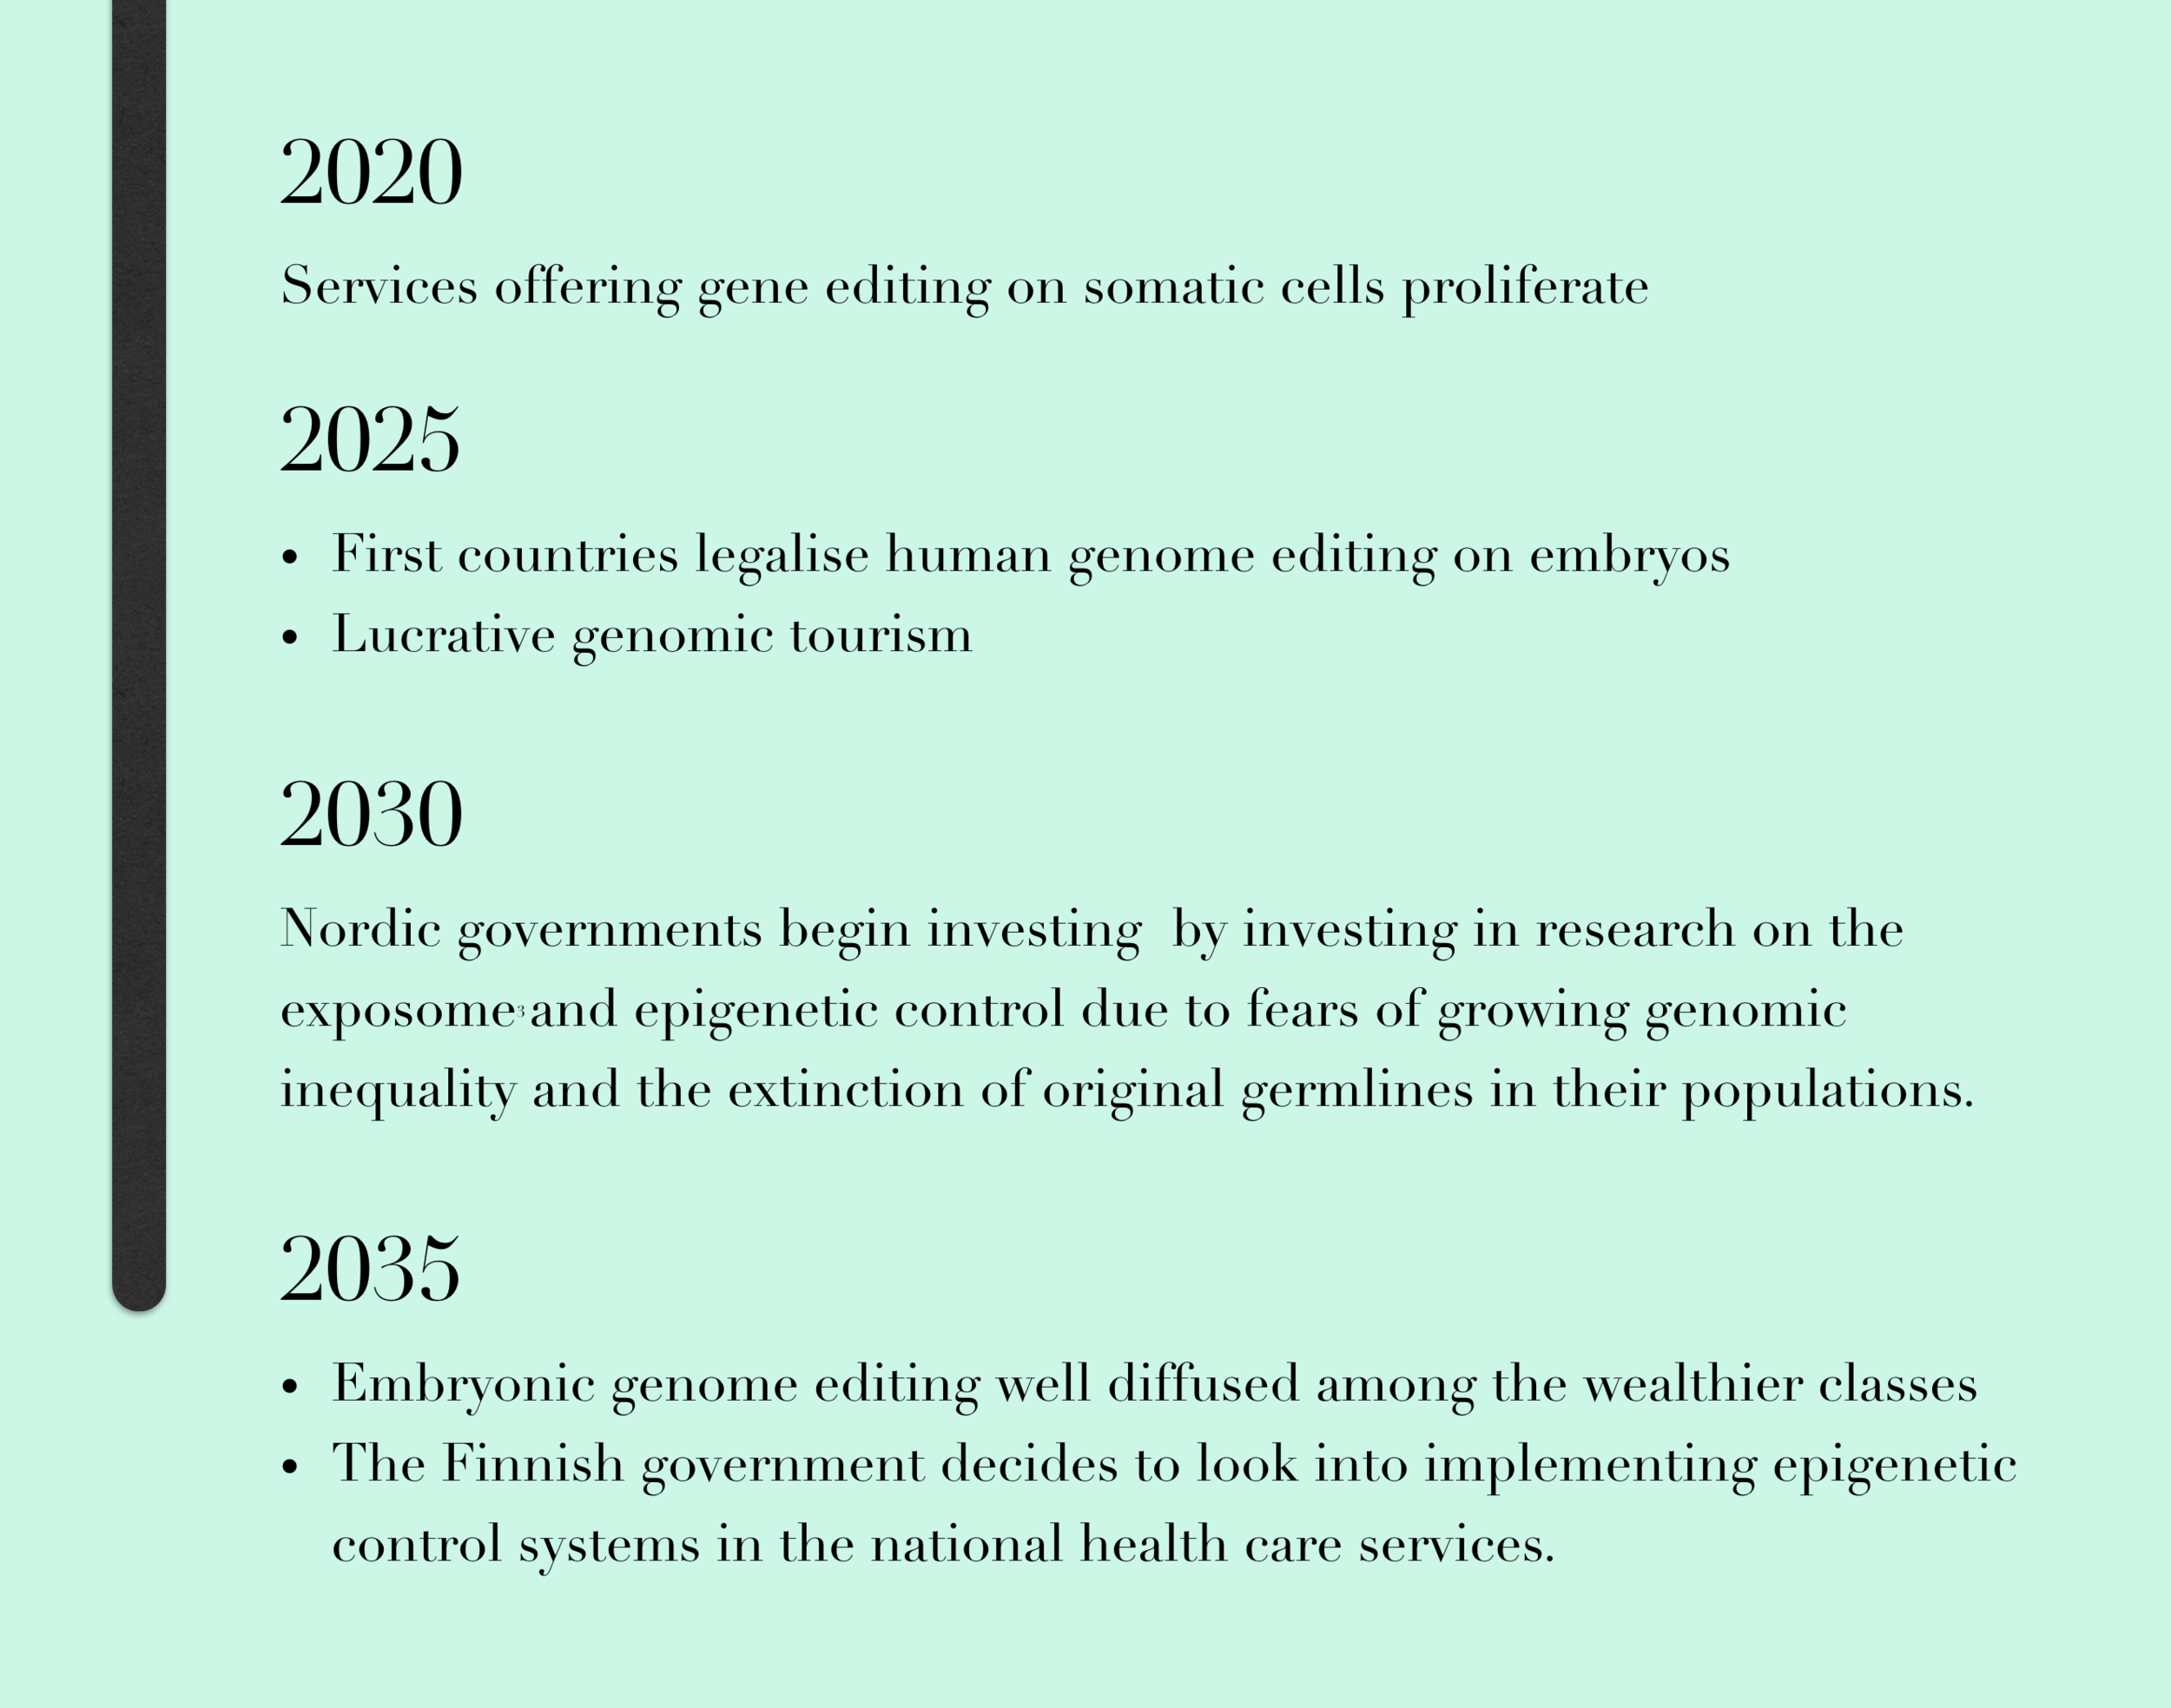 A future projection for the policy development of assisted reproduction and genetic modification technologies.